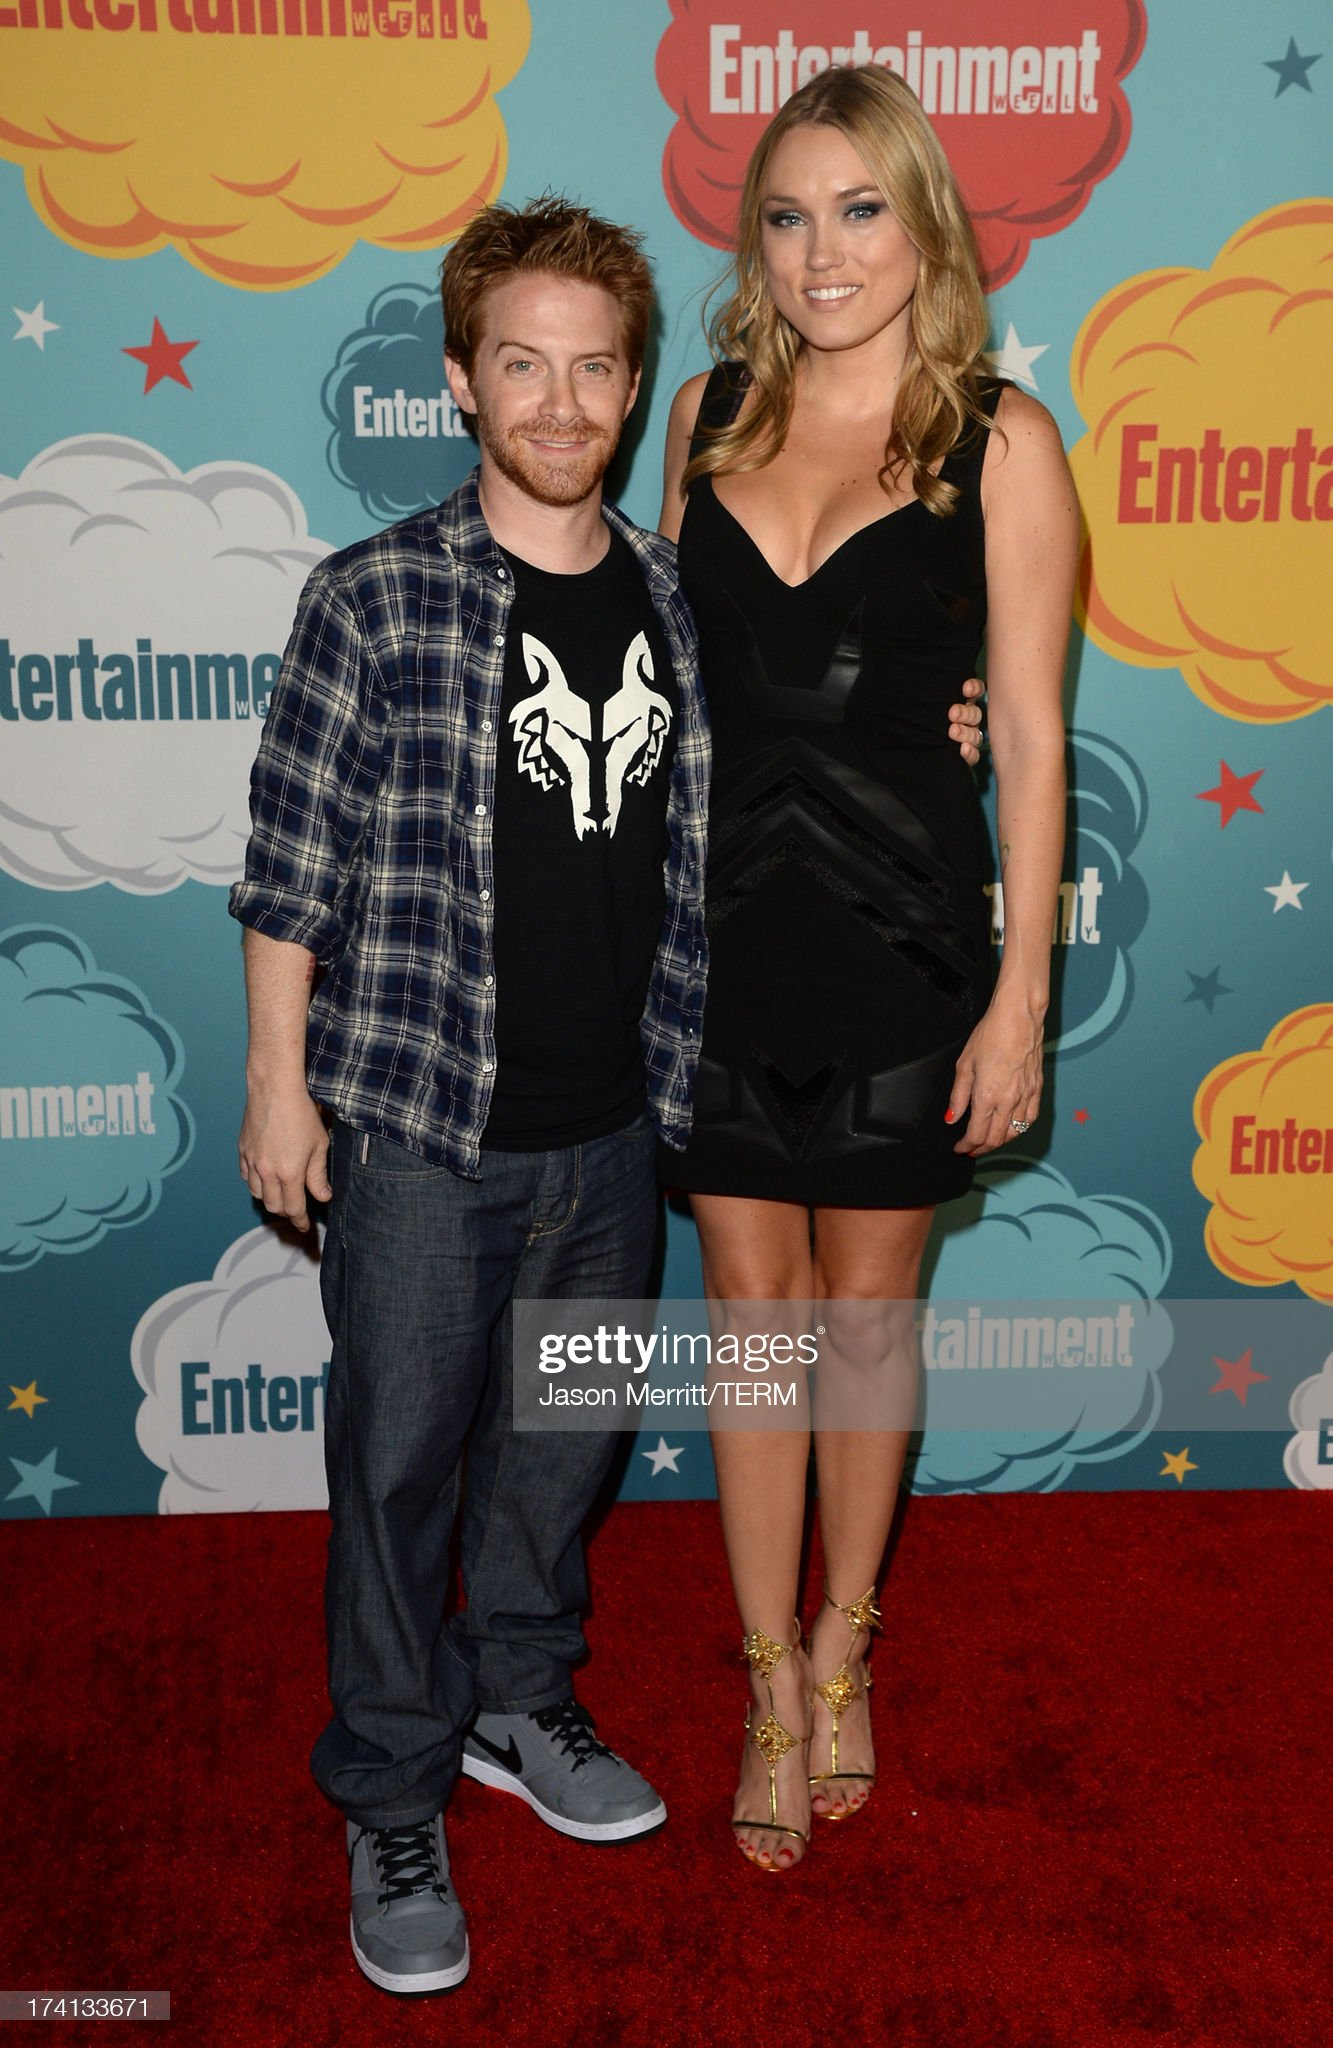 ¿Cuánto mide Clare Grant? - Real height Actors-seth-green-and-clare-grant-attend-entertainment-weeklys-annual-picture-id174133671?s=2048x2048